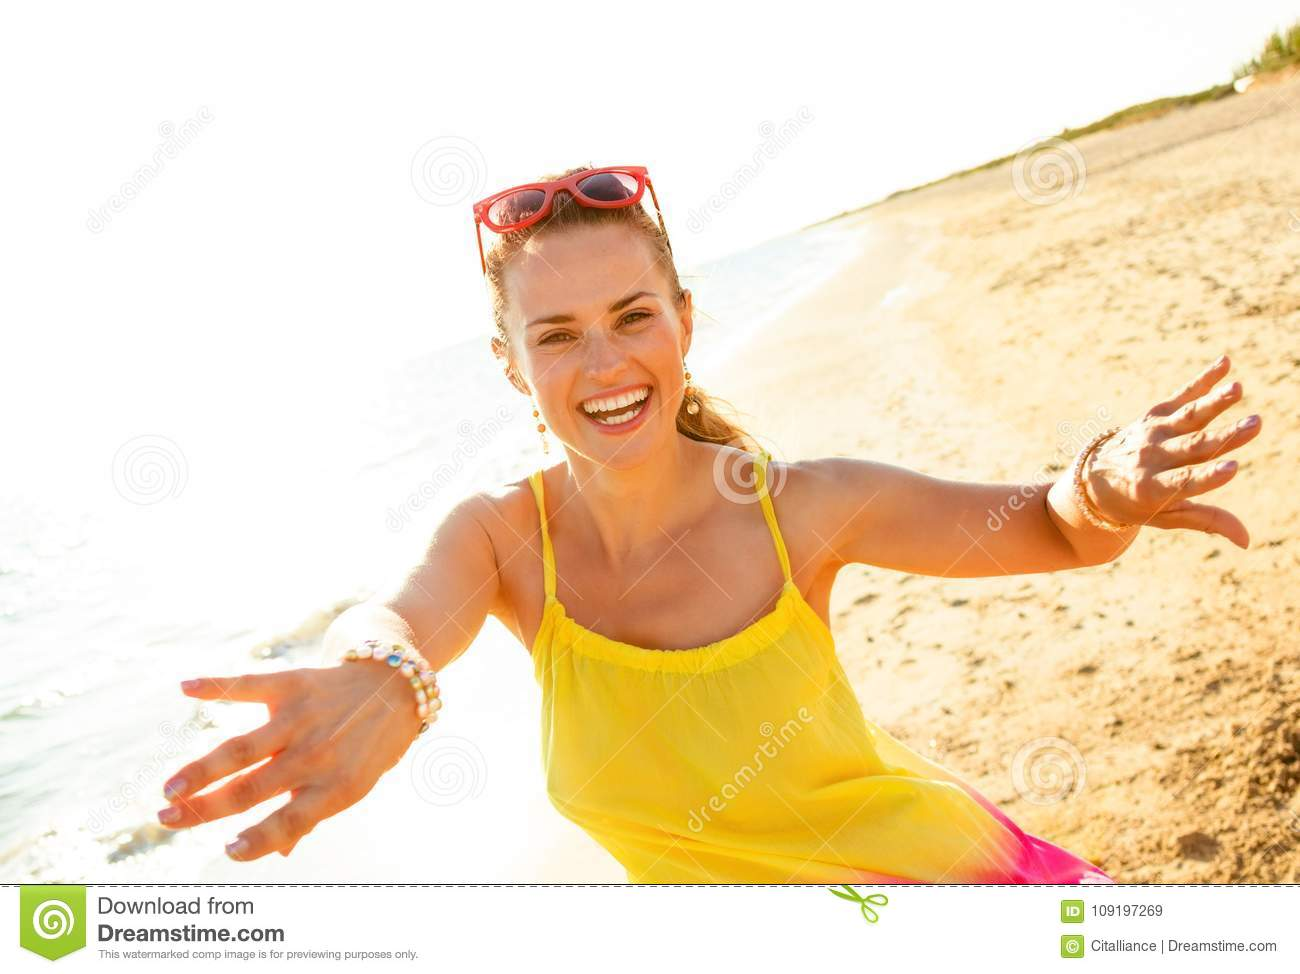 Smiling young woman on beach in evening having fun time